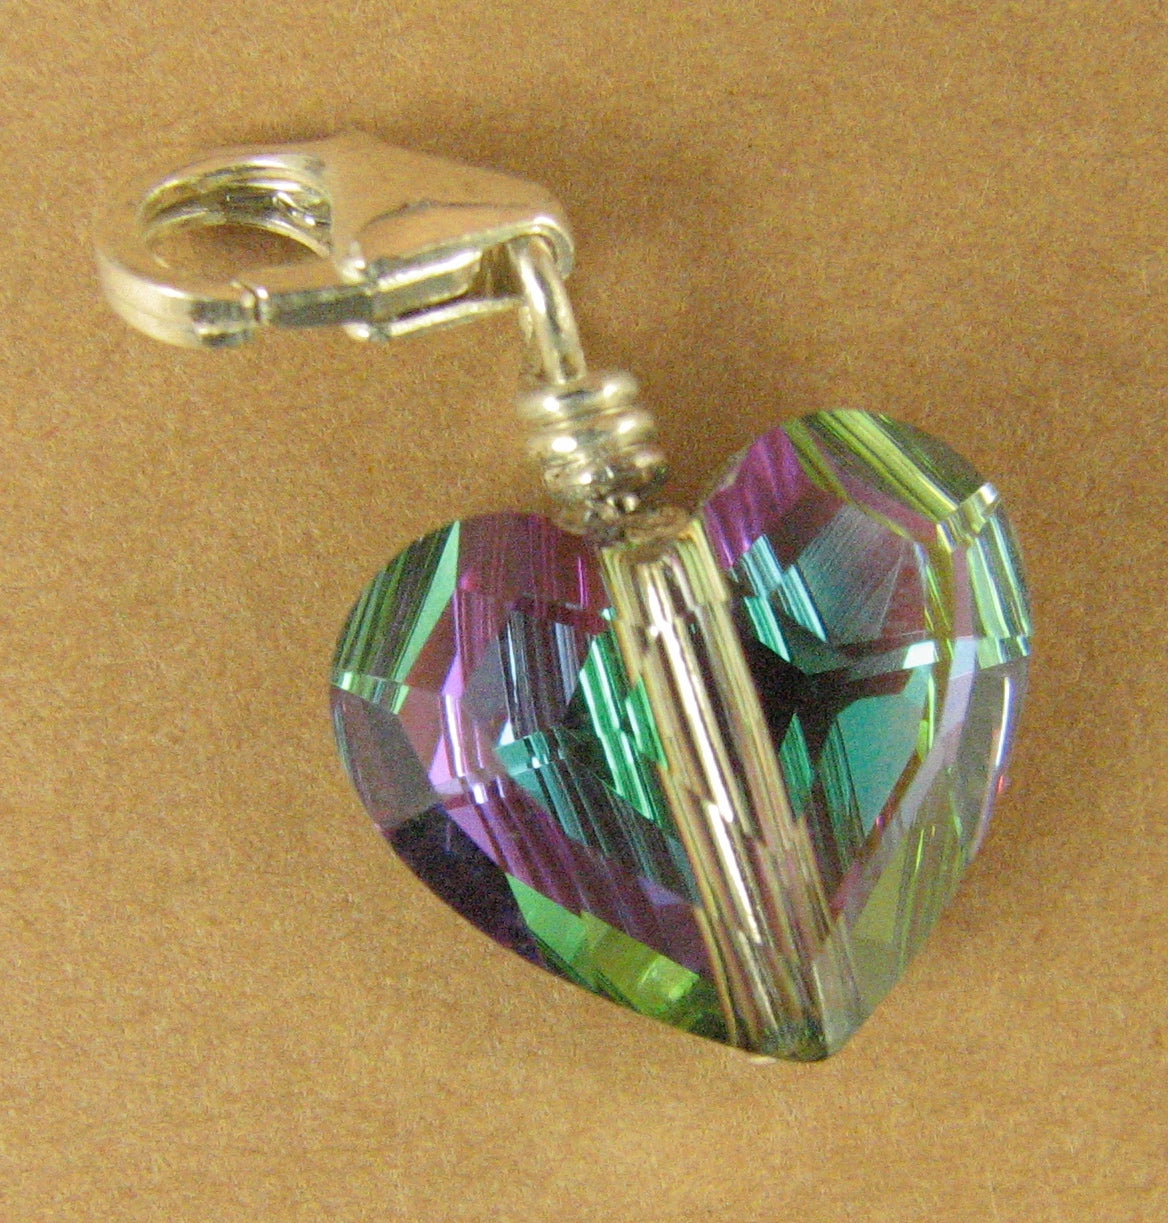 Heart crystal clip on charm. Sterling silver 925. Made w/ swarovski elements.